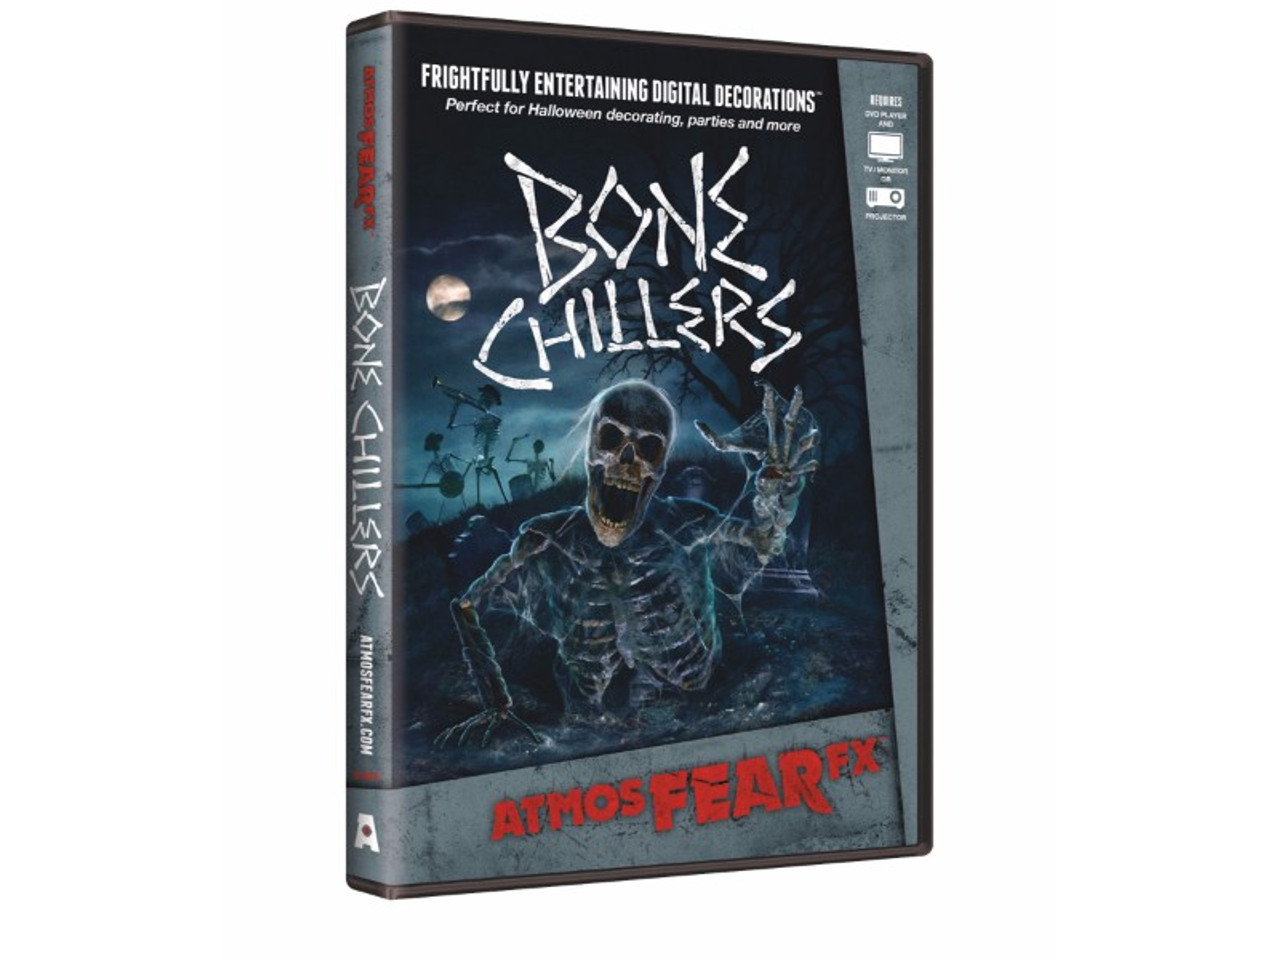 atmosfearfx bone chillers digital media see video below with atmosfearfx macabre manor digital effects media